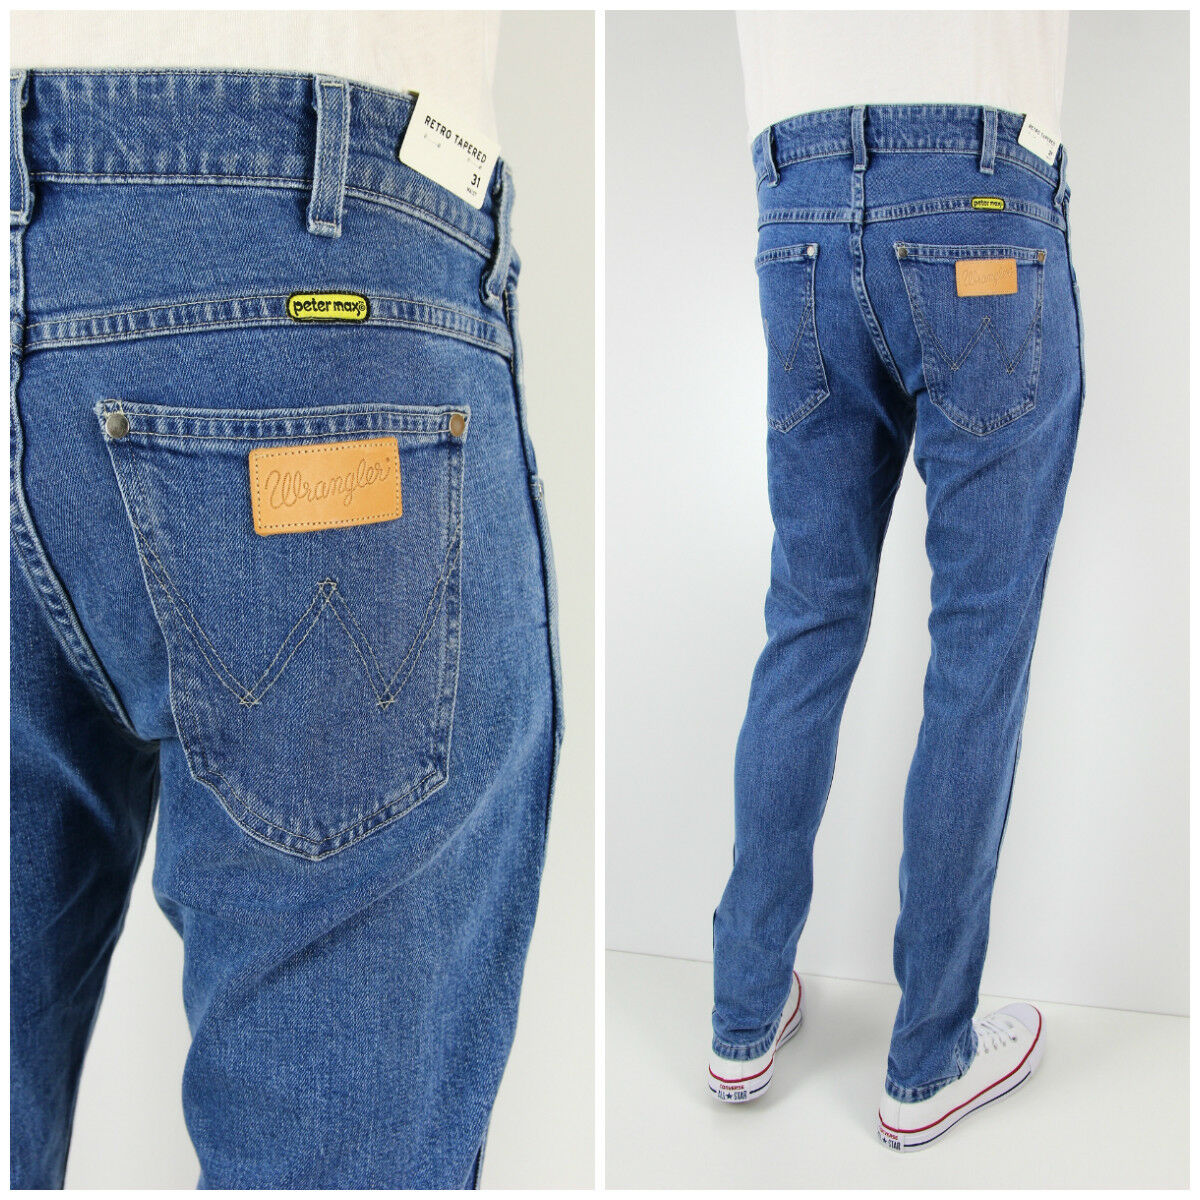 NEW WRANGLER by PETER MAX TAPERED SLIM JEANS  RETRO FIT LARSTON   BRYSON L32 L34